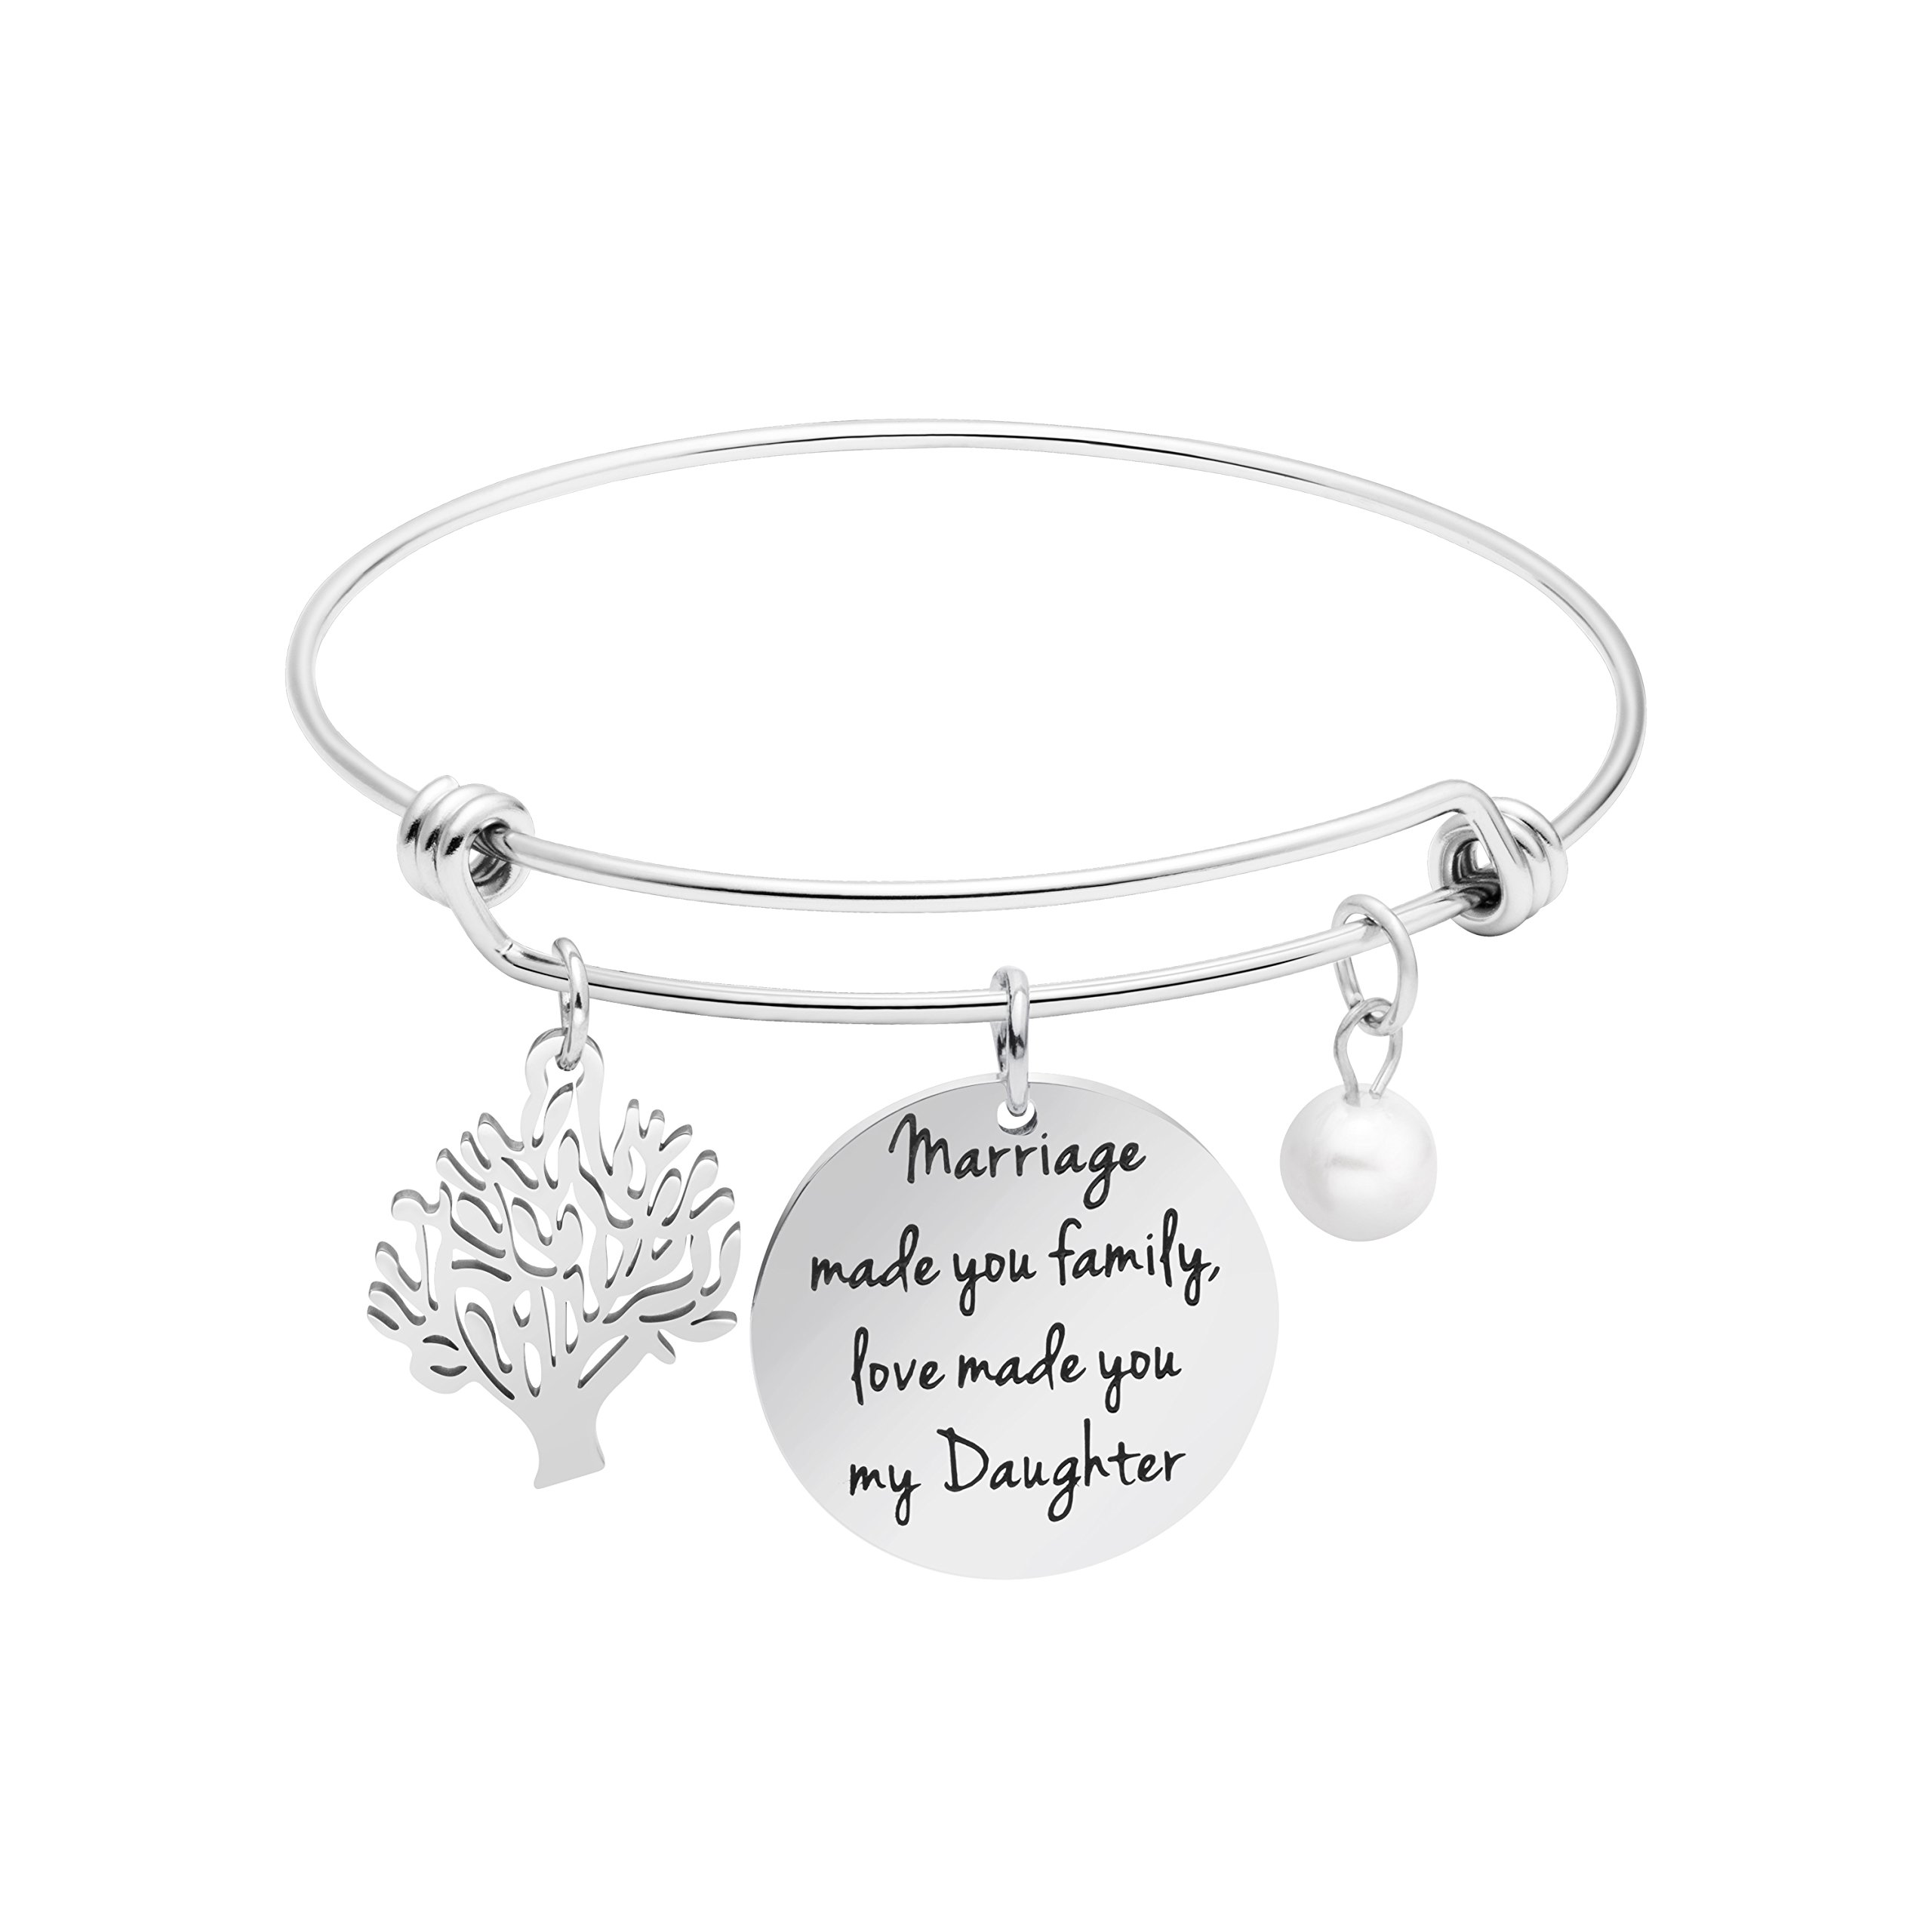 Awegift Wedding Gifts for Daughter in Law Expandable Charm Bracelet Bride Jewelry for Her Stepdaughter Present